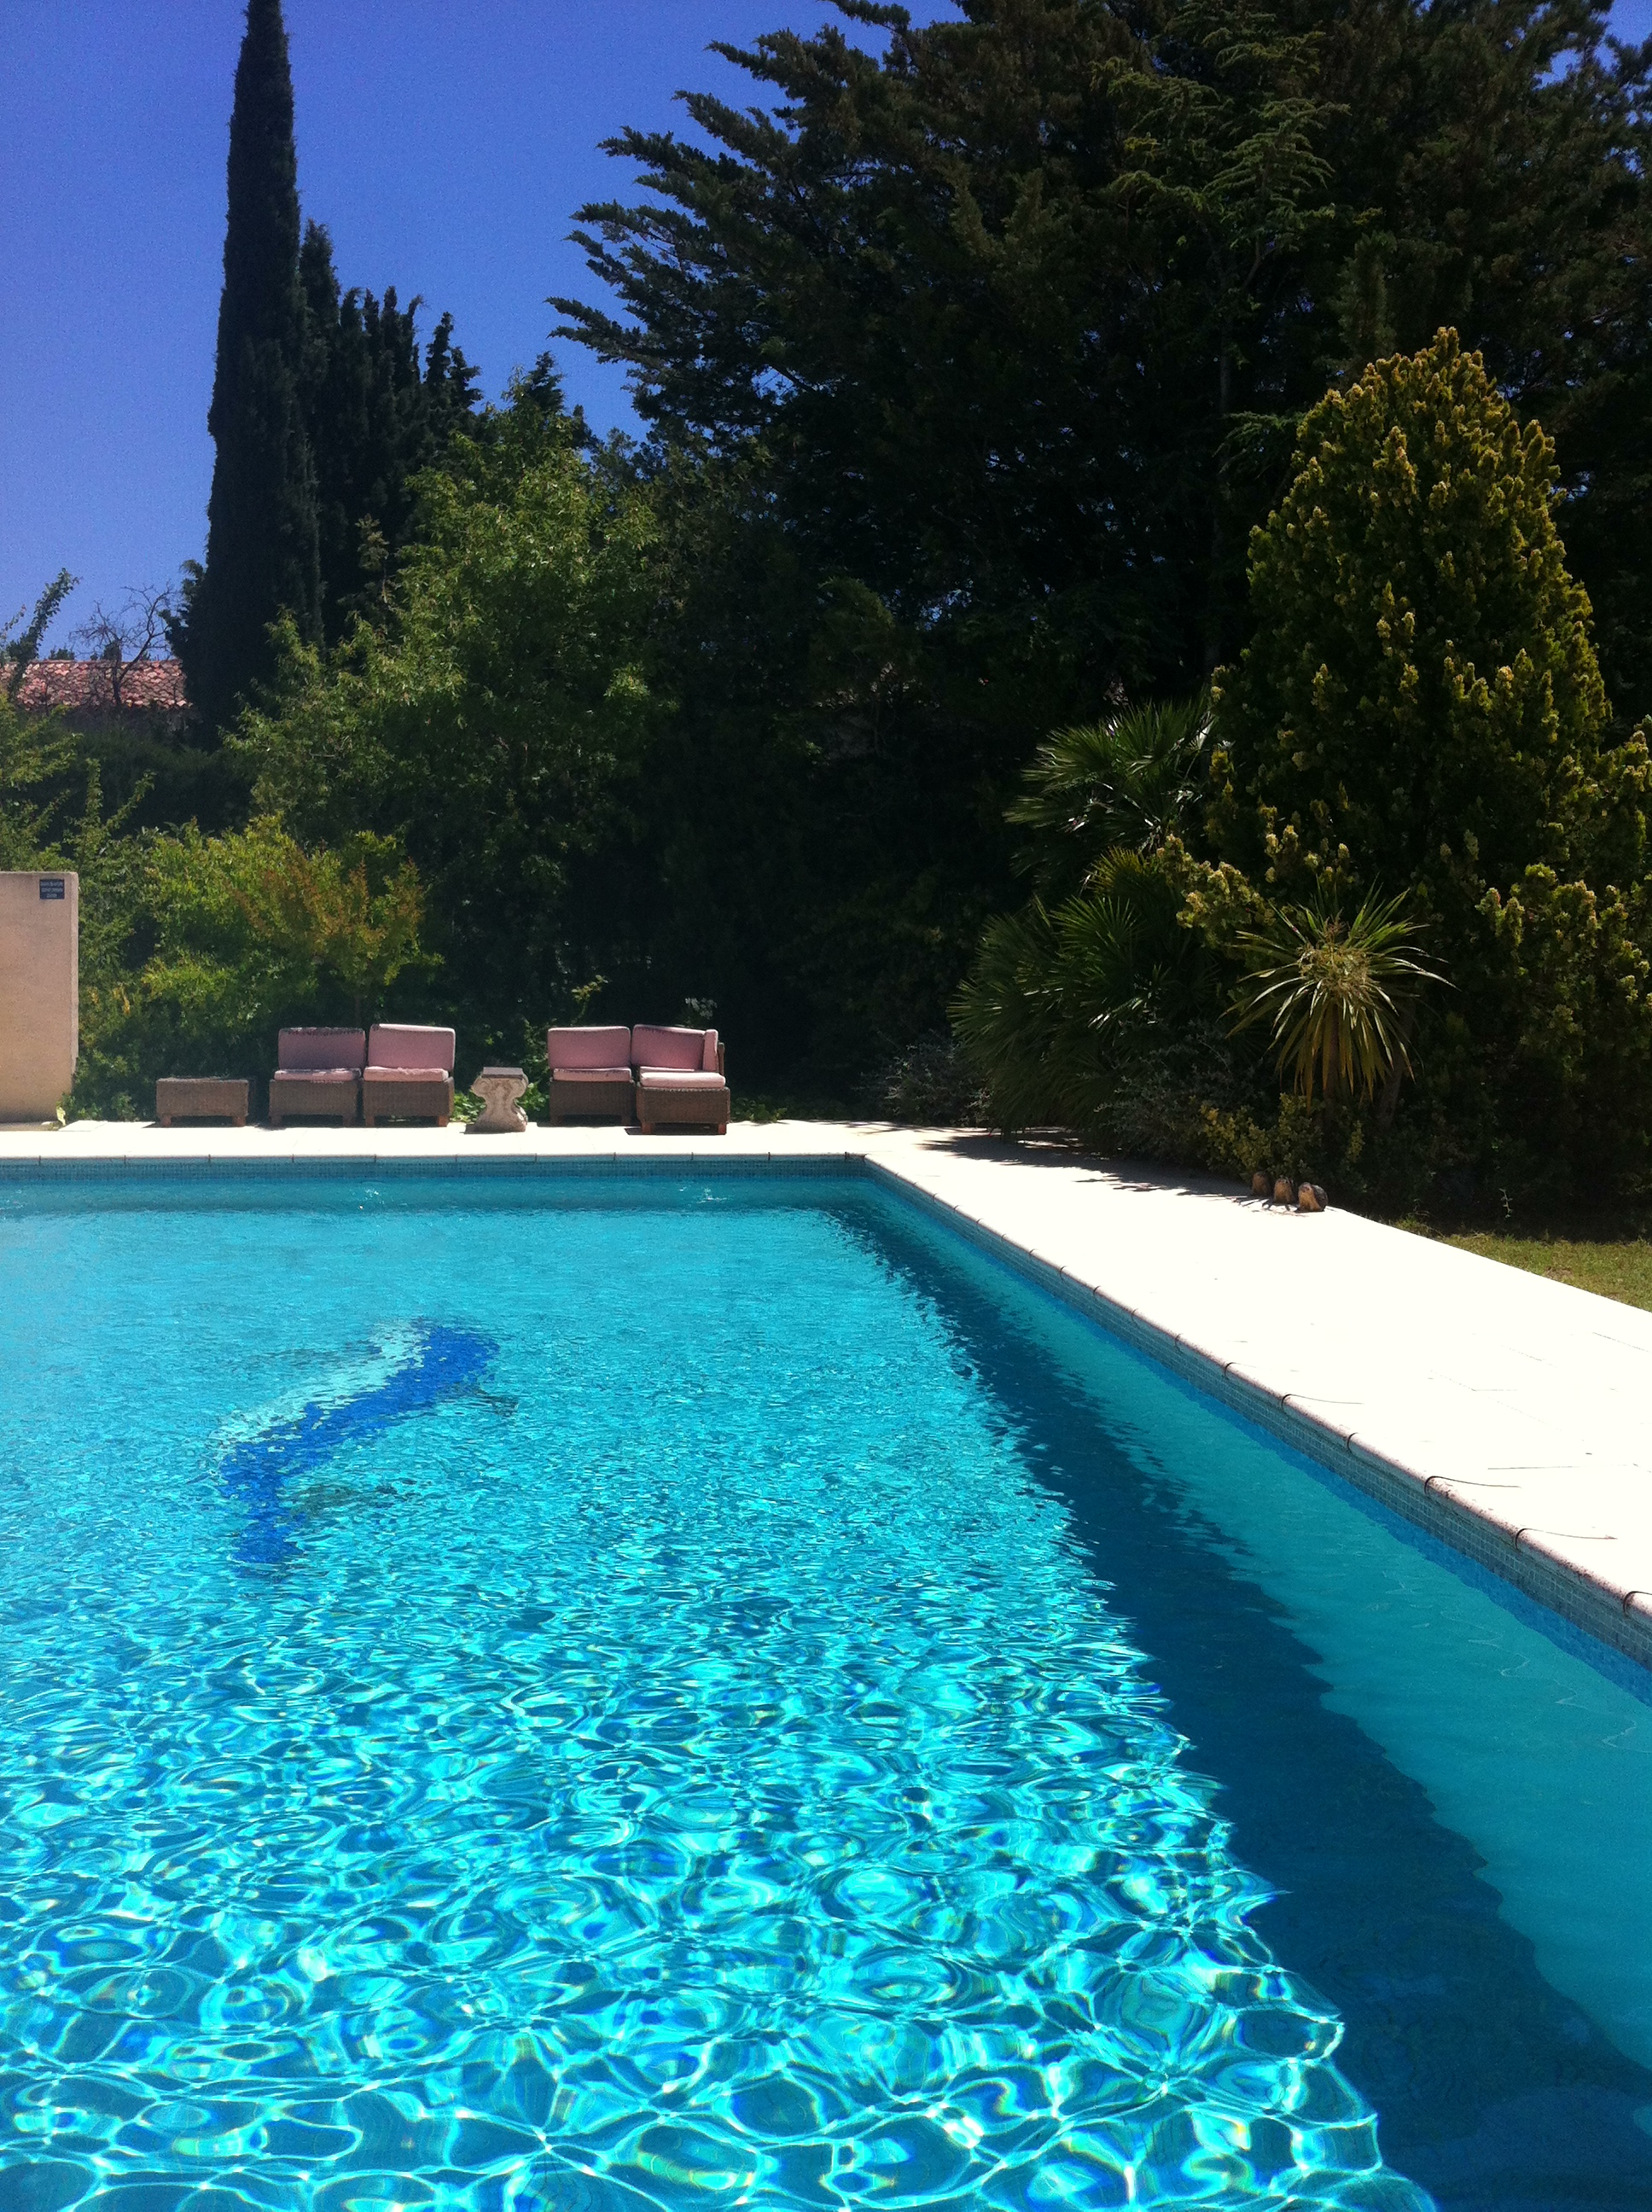 la piscine, our pool, zwembad